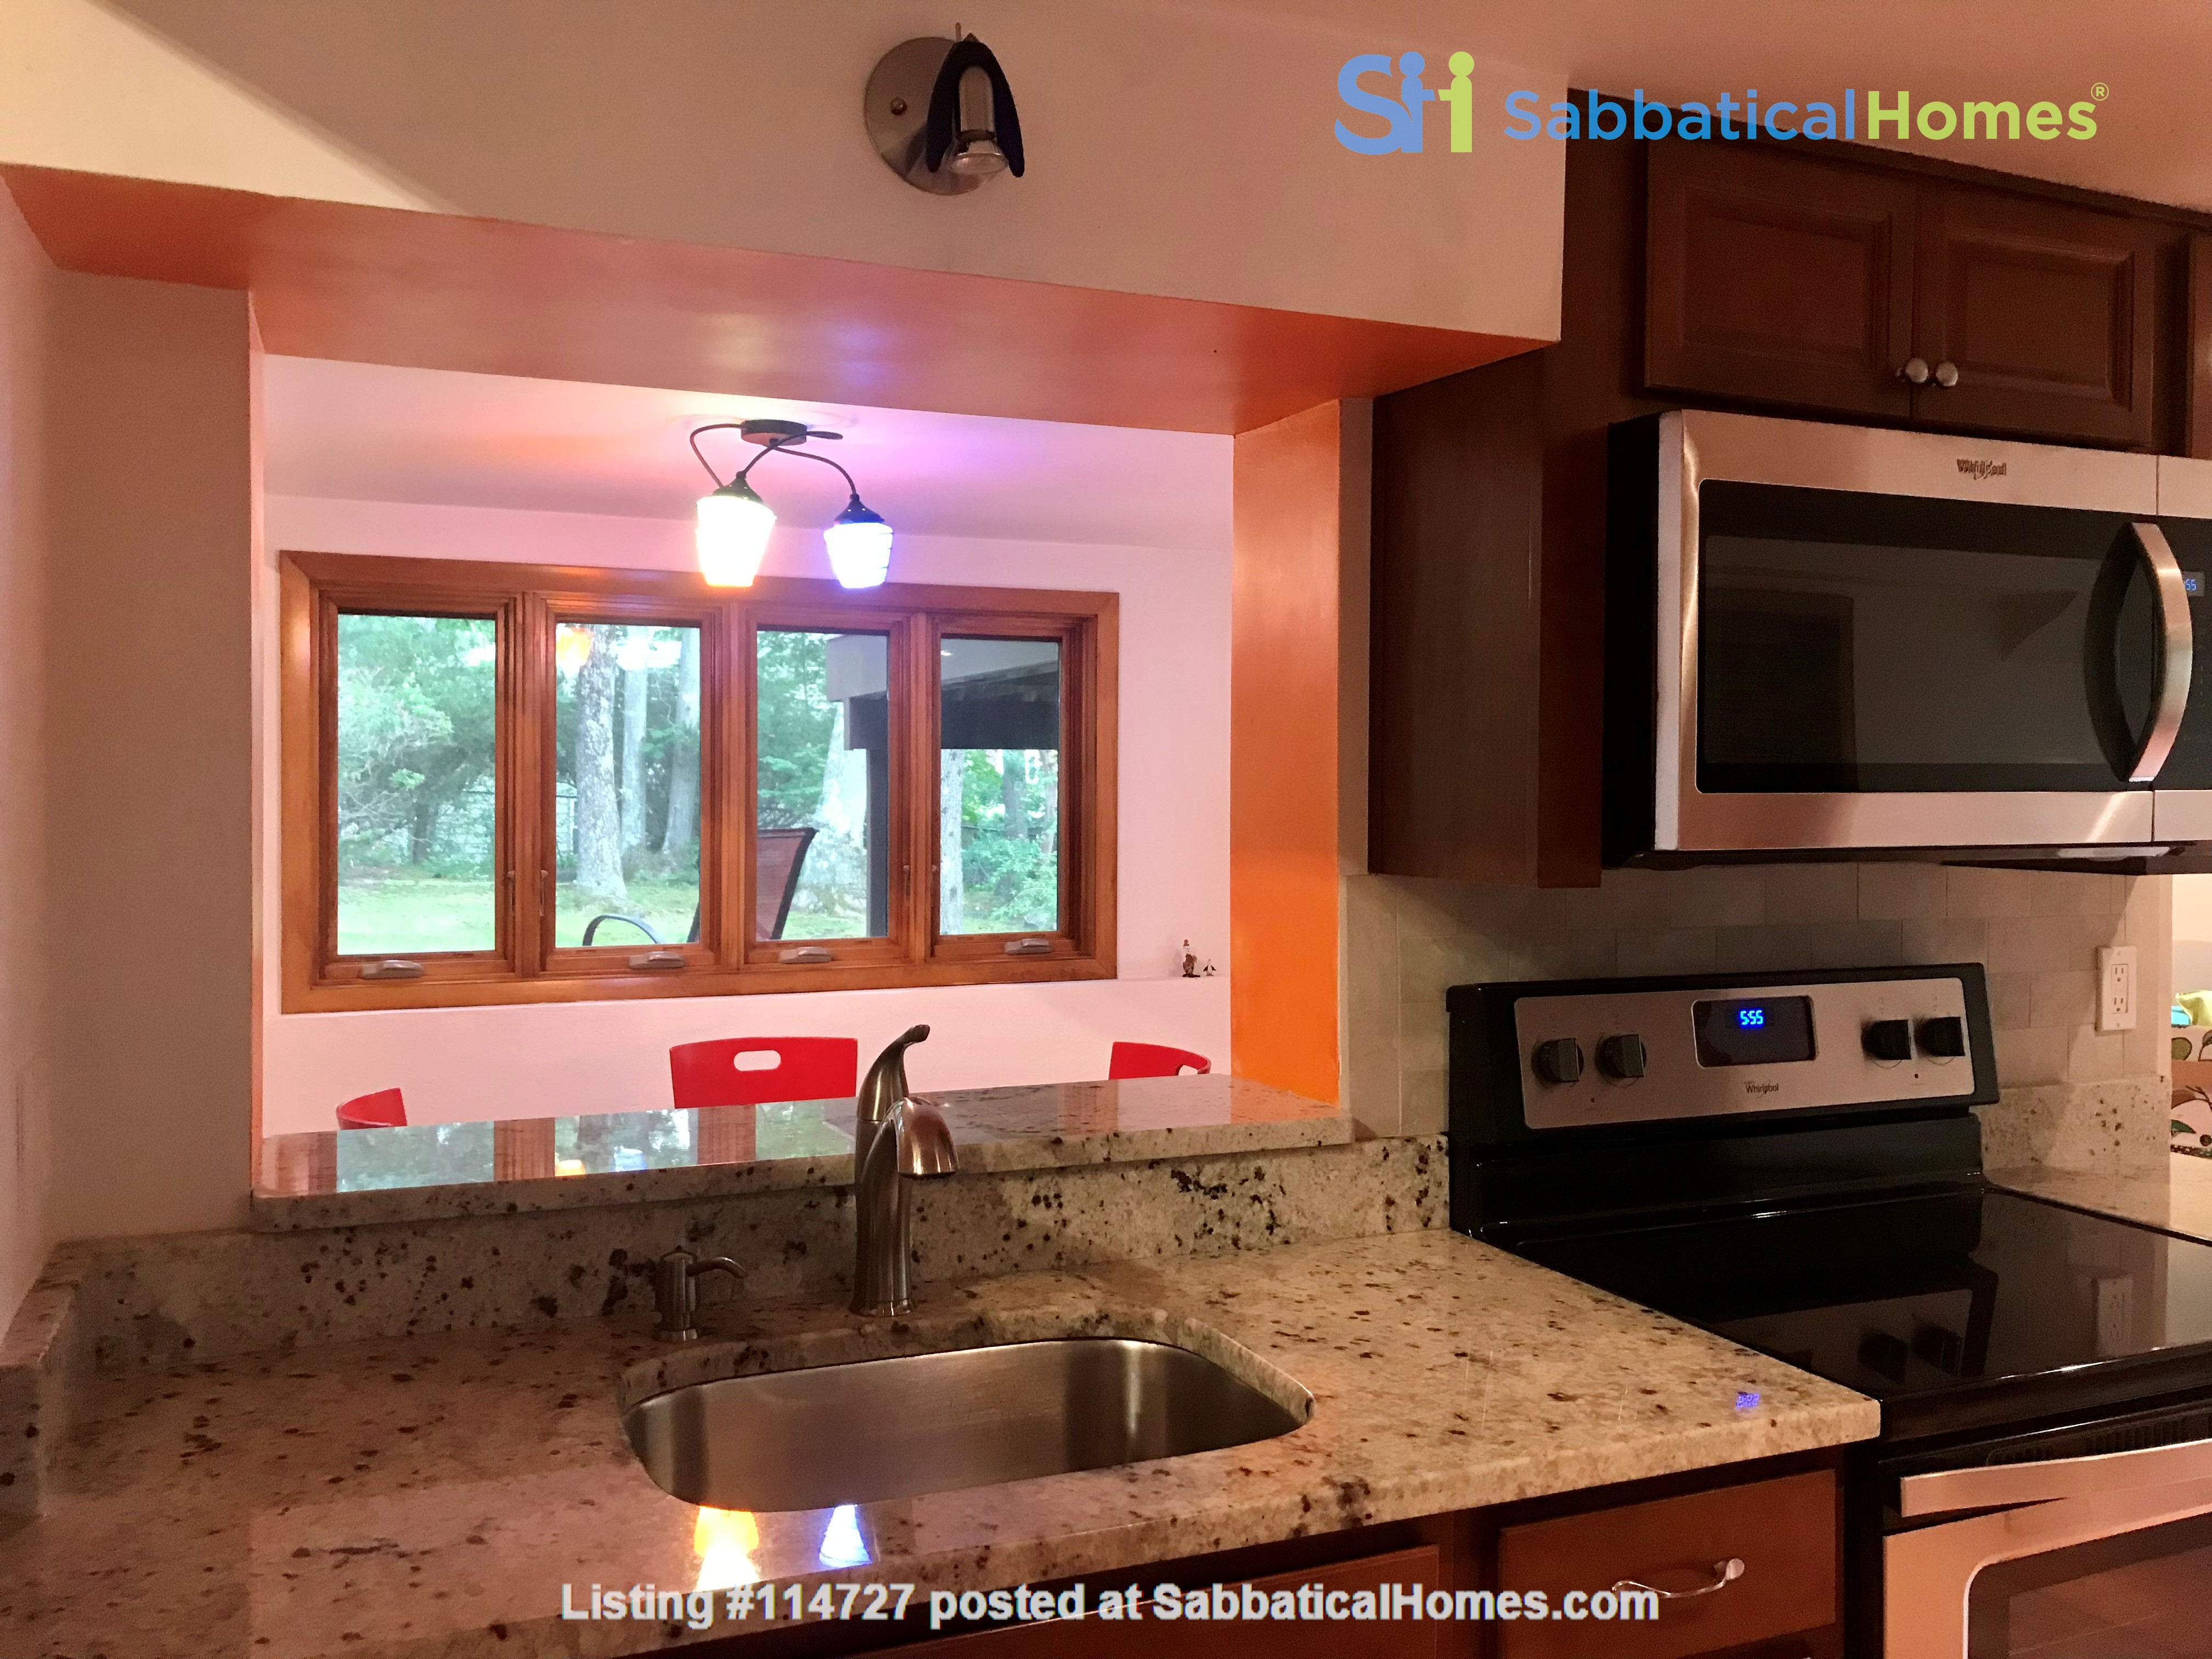 Newly furn &built 2 BR 1025 sq ft apt w/utlts in lux home in Winchester, Ma Home Rental in Winchester, Massachusetts, United States 3